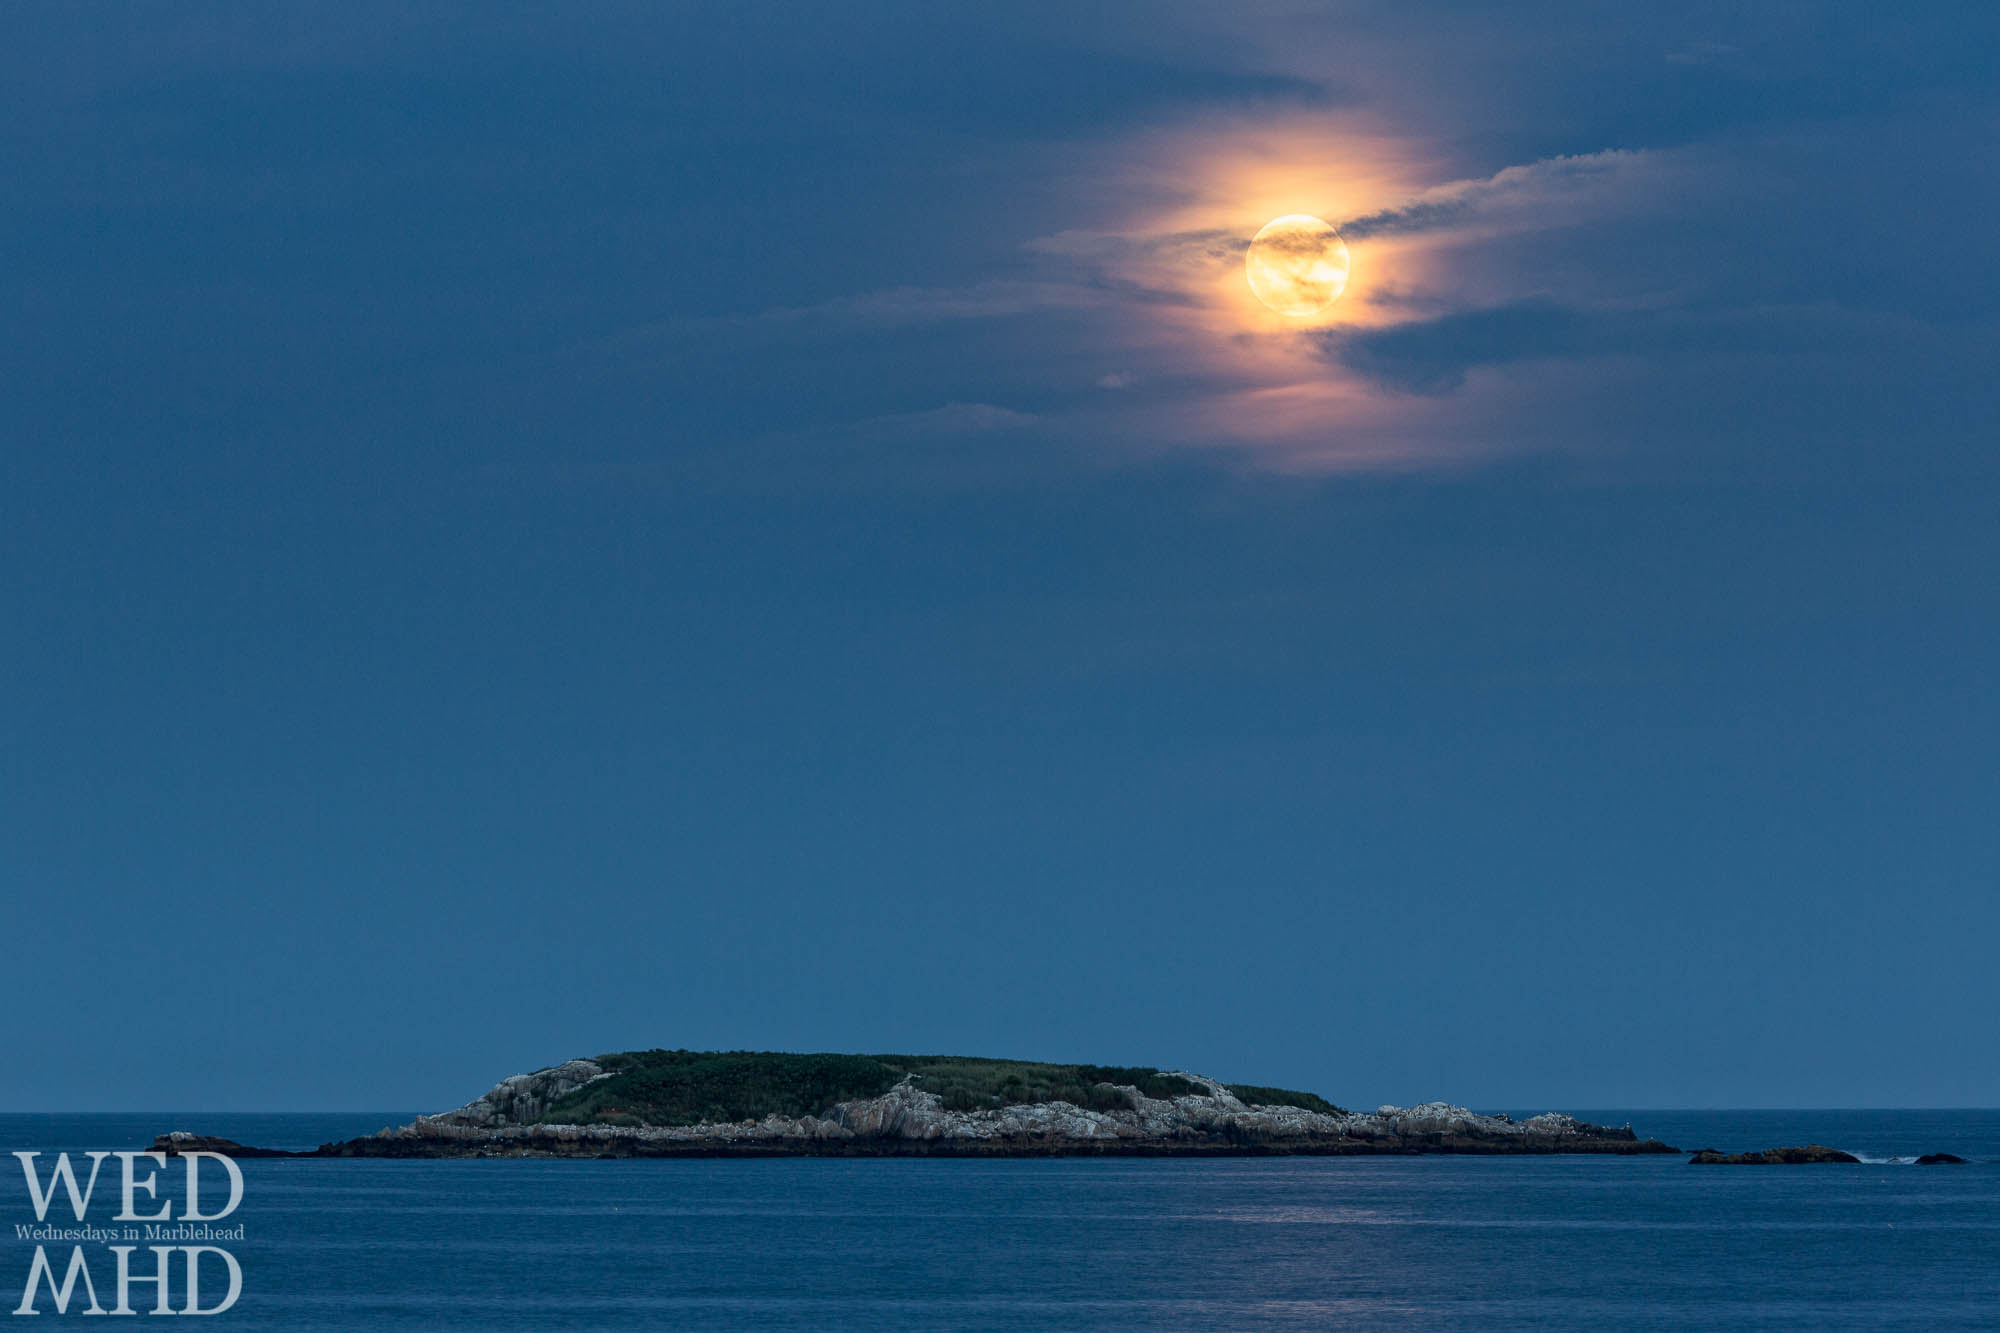 The full moon rises over Ram Island with cloud cover creating a moonglow effect in the evening sky